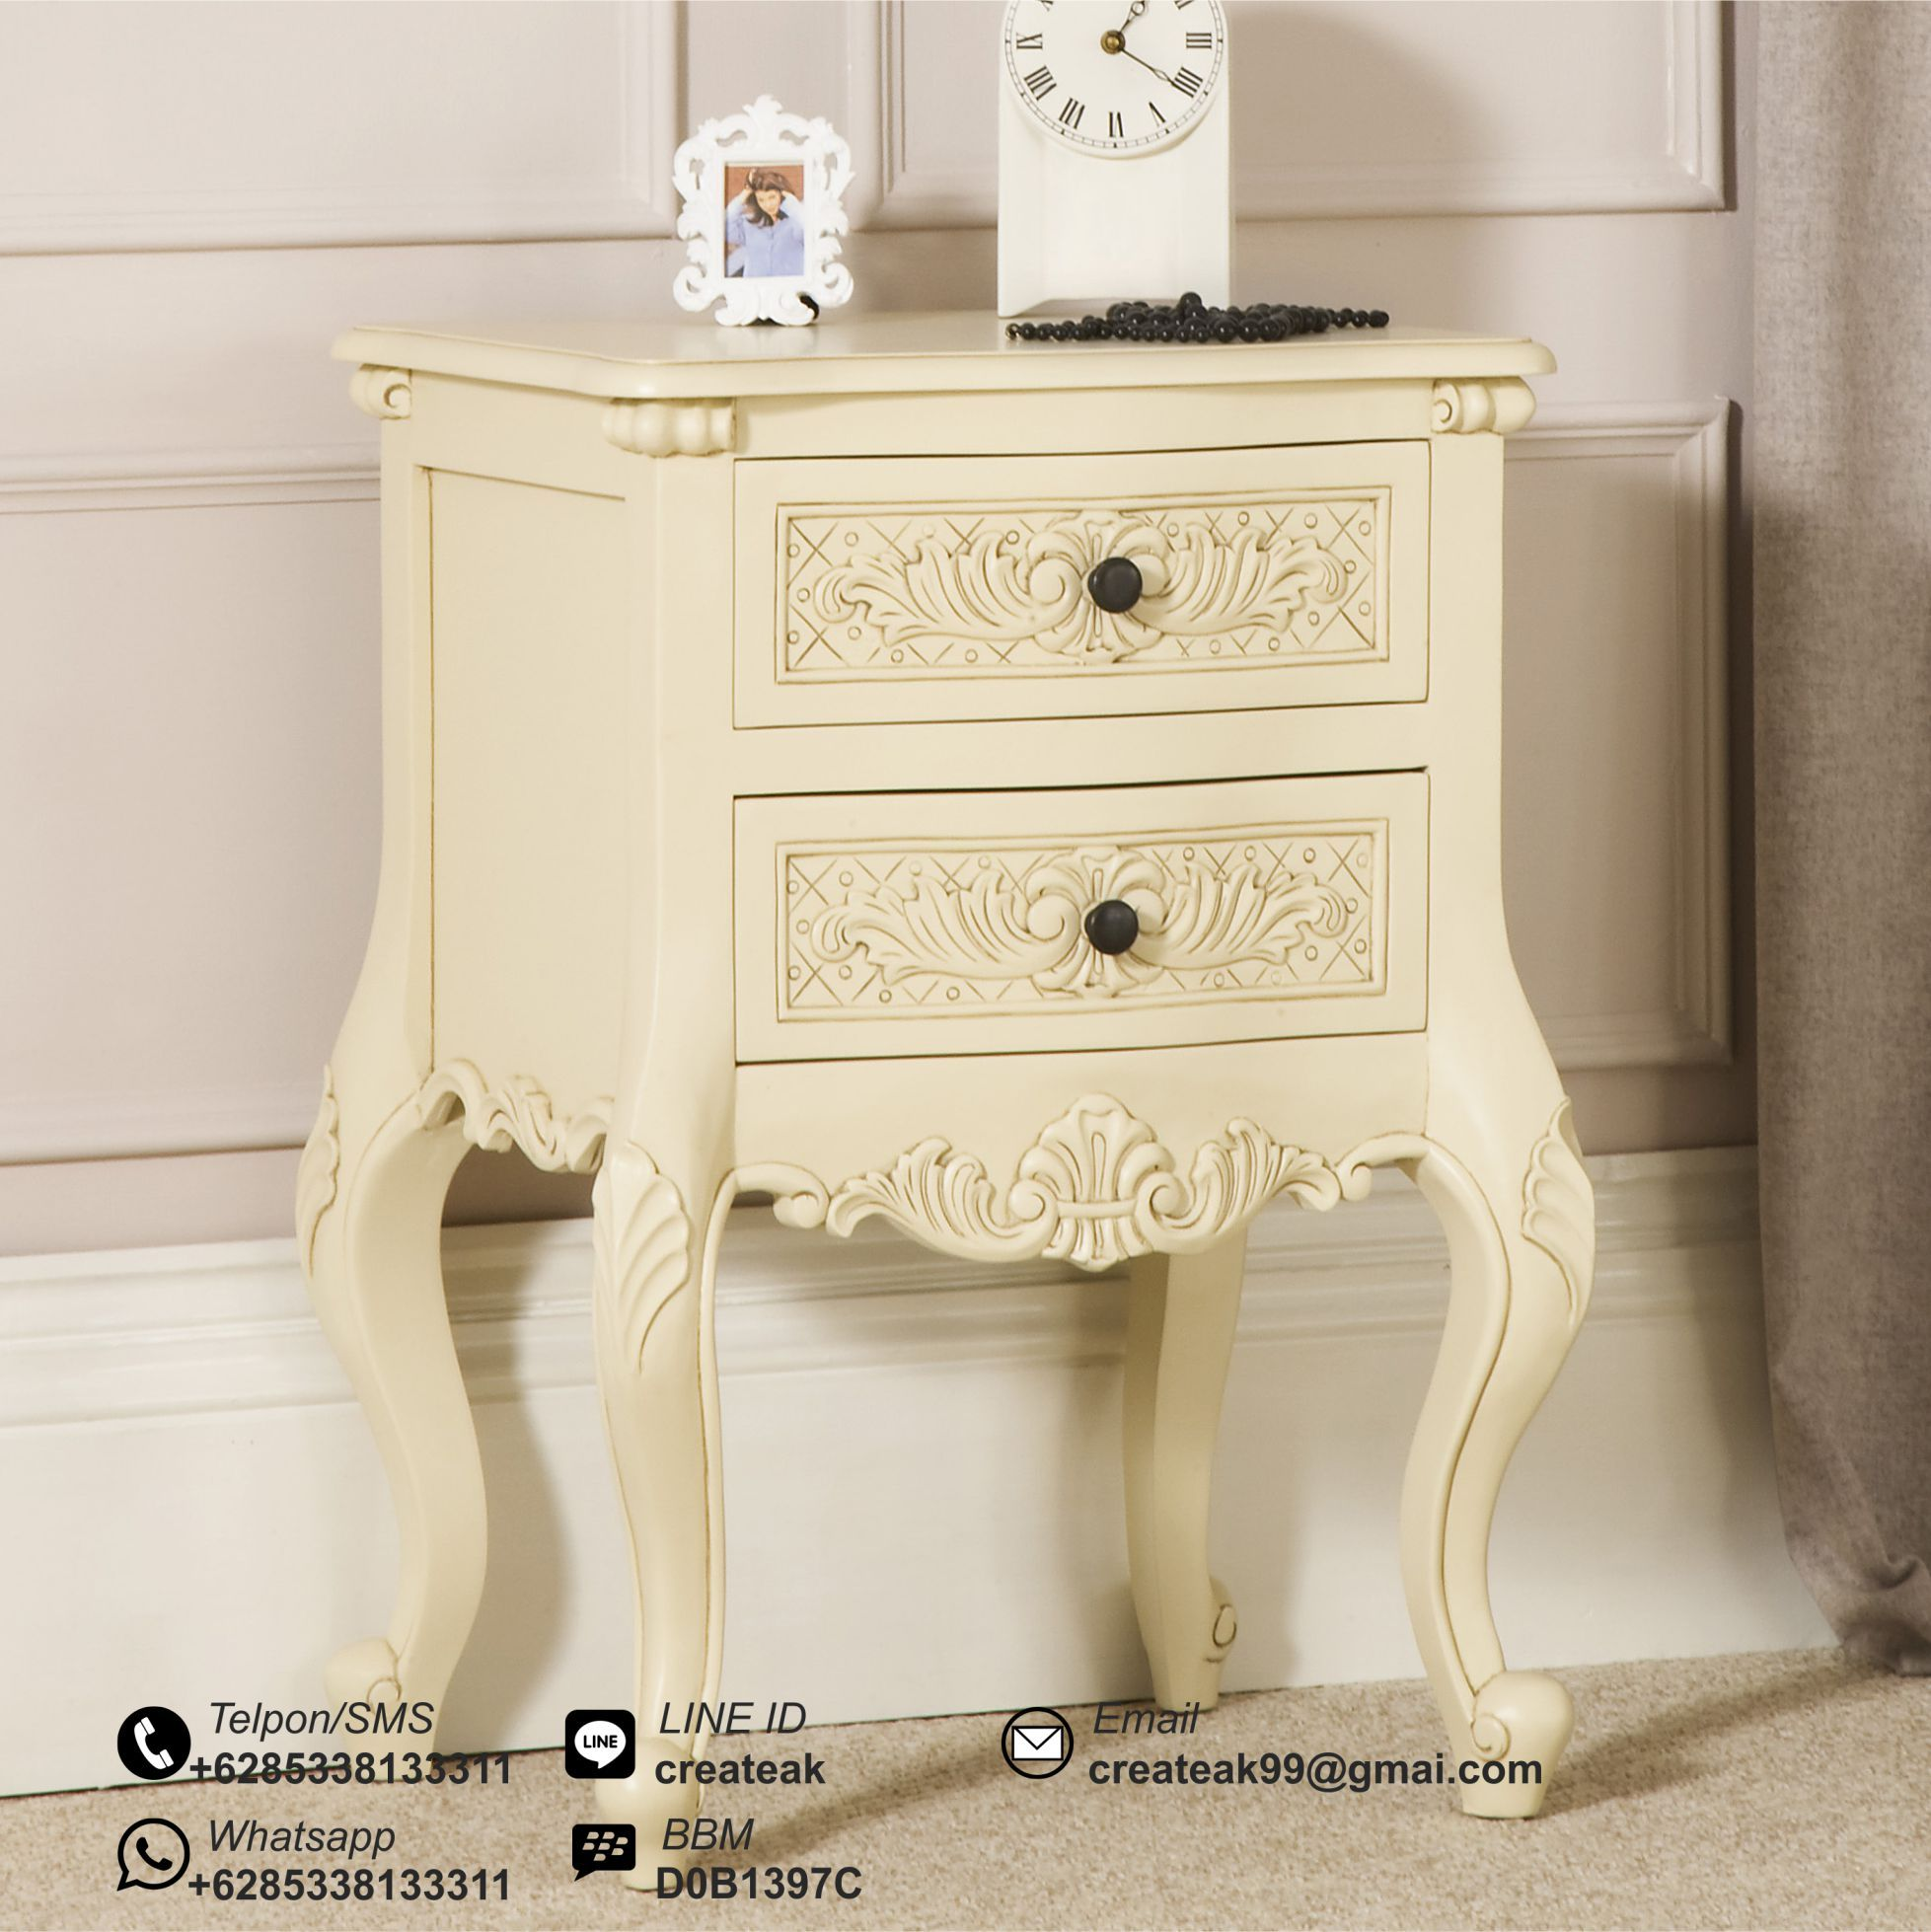 best meja nakas nightstands bedside tables threshold margate accent table night stands new home decor ideas round kitchen outdoor buffet narrow white oak cocktail tablecloth resin